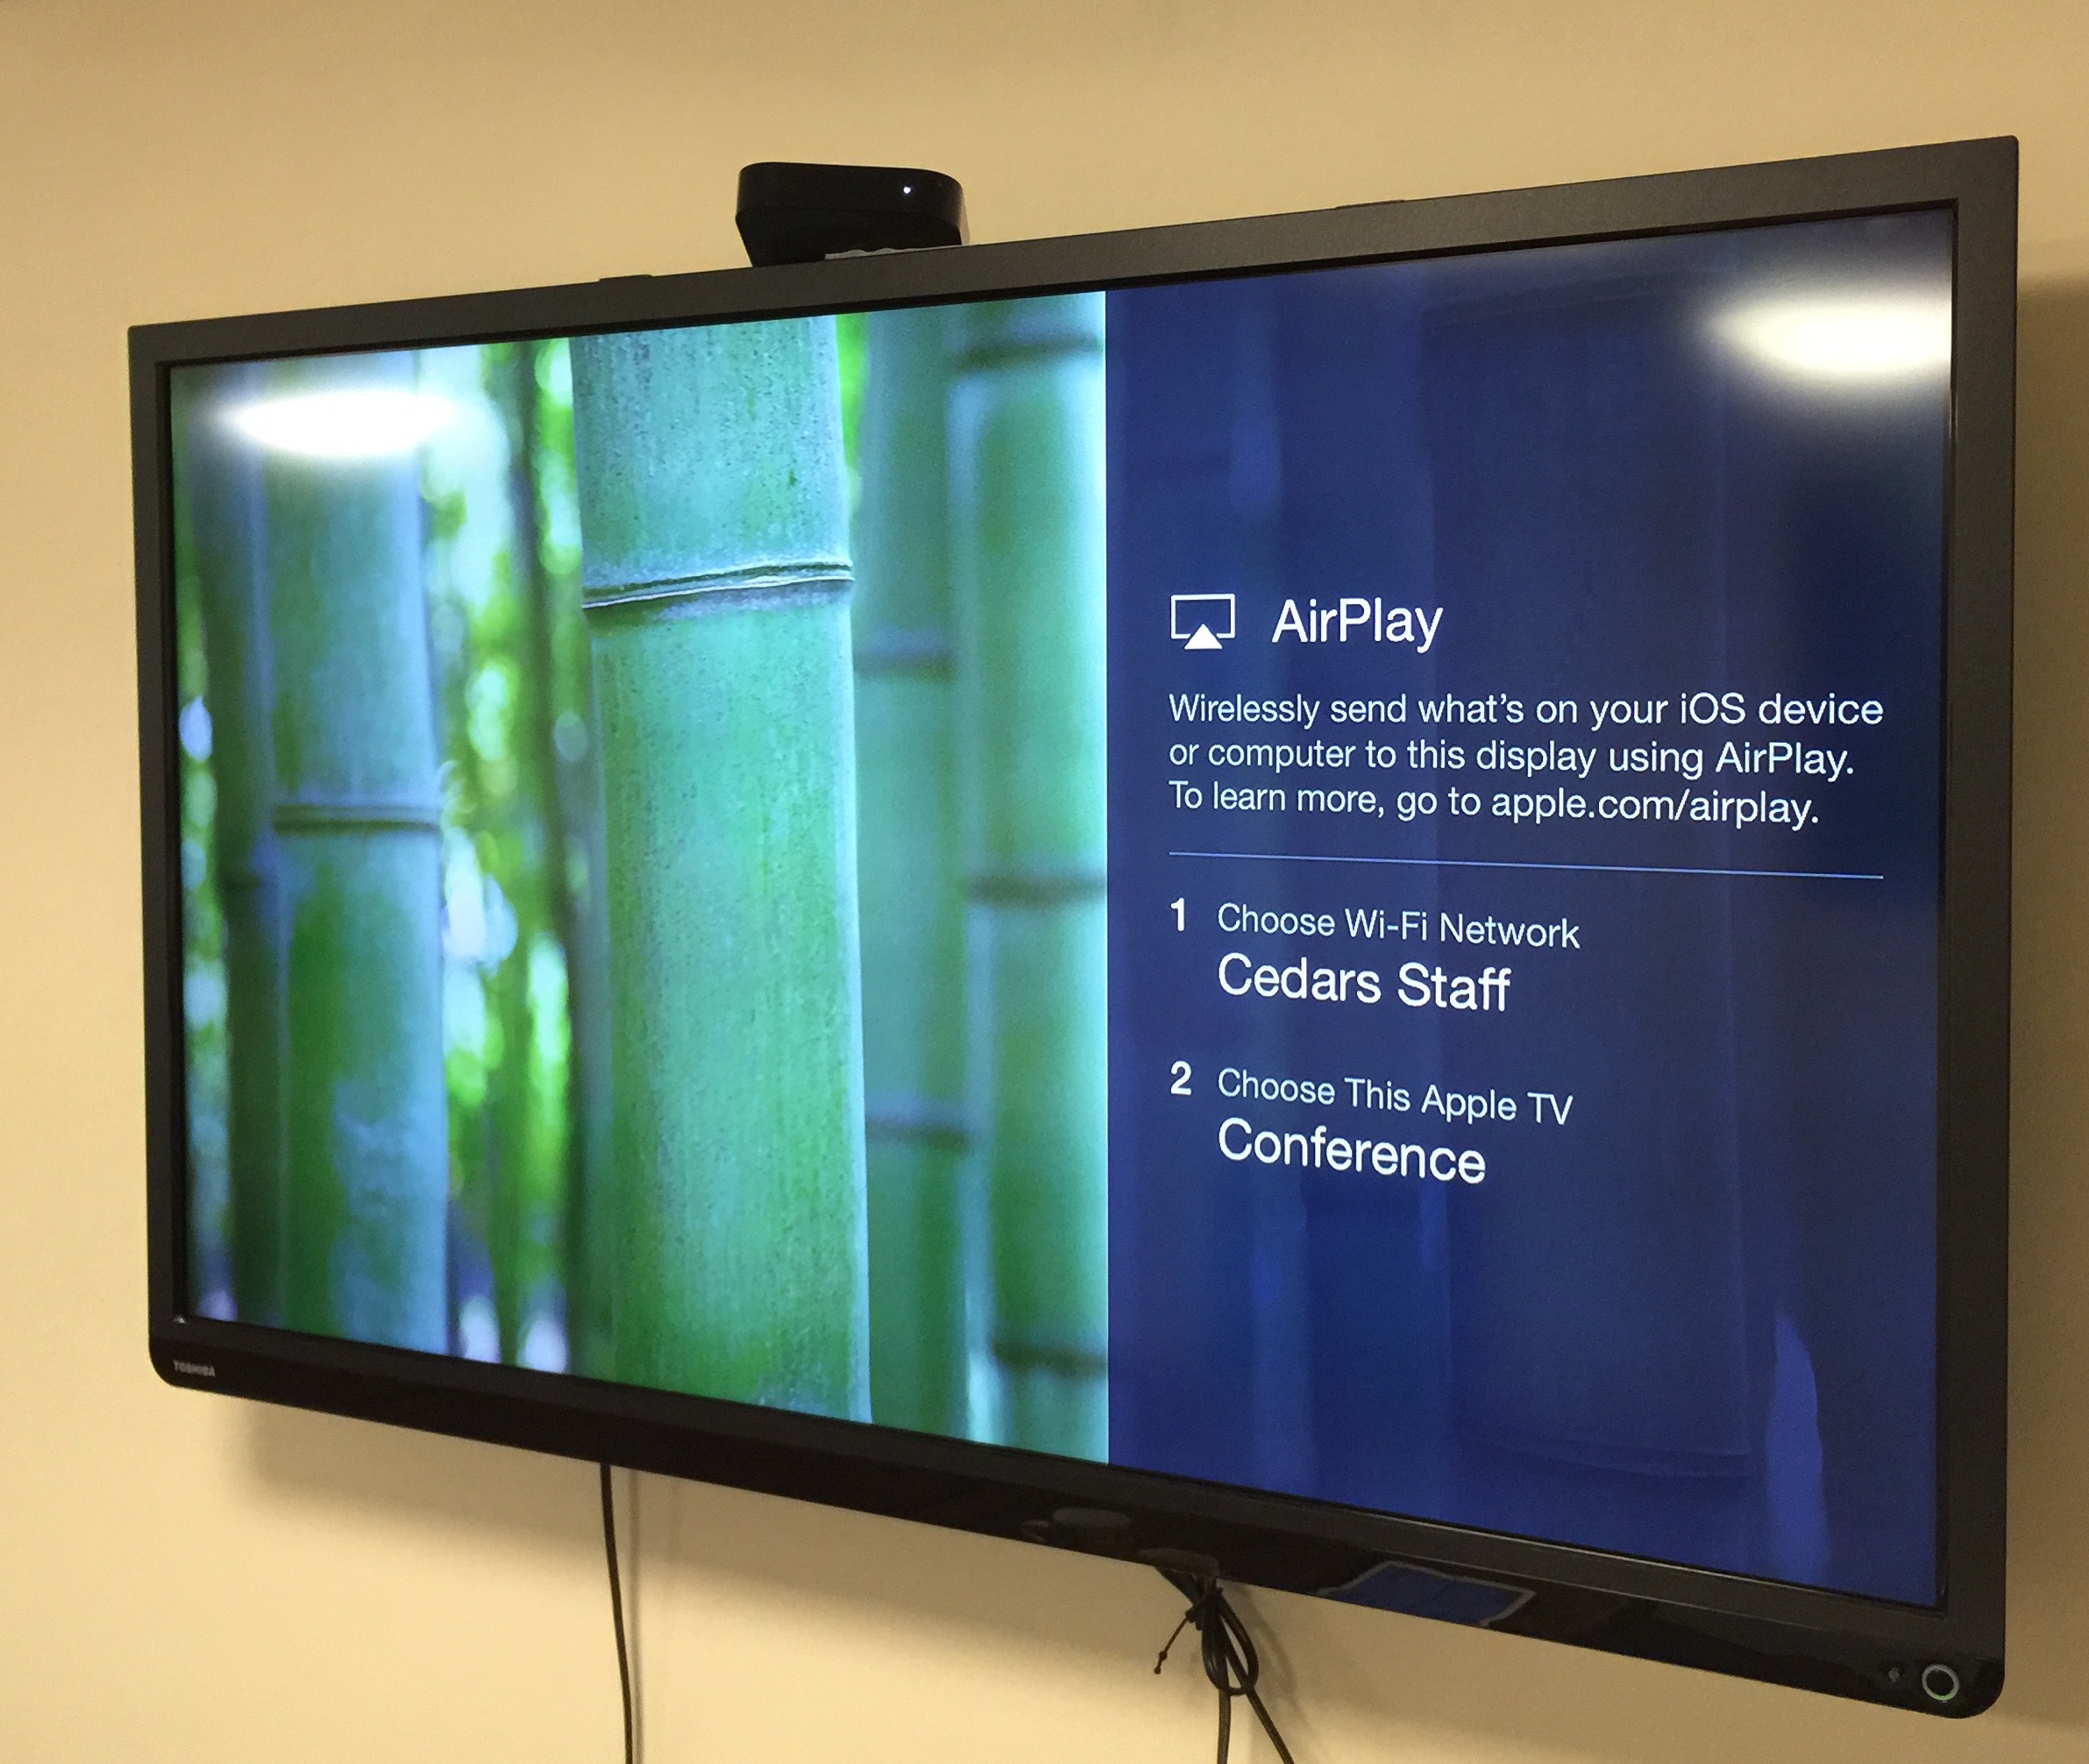 The result: an Apple TV that boots into Conference Room mode.